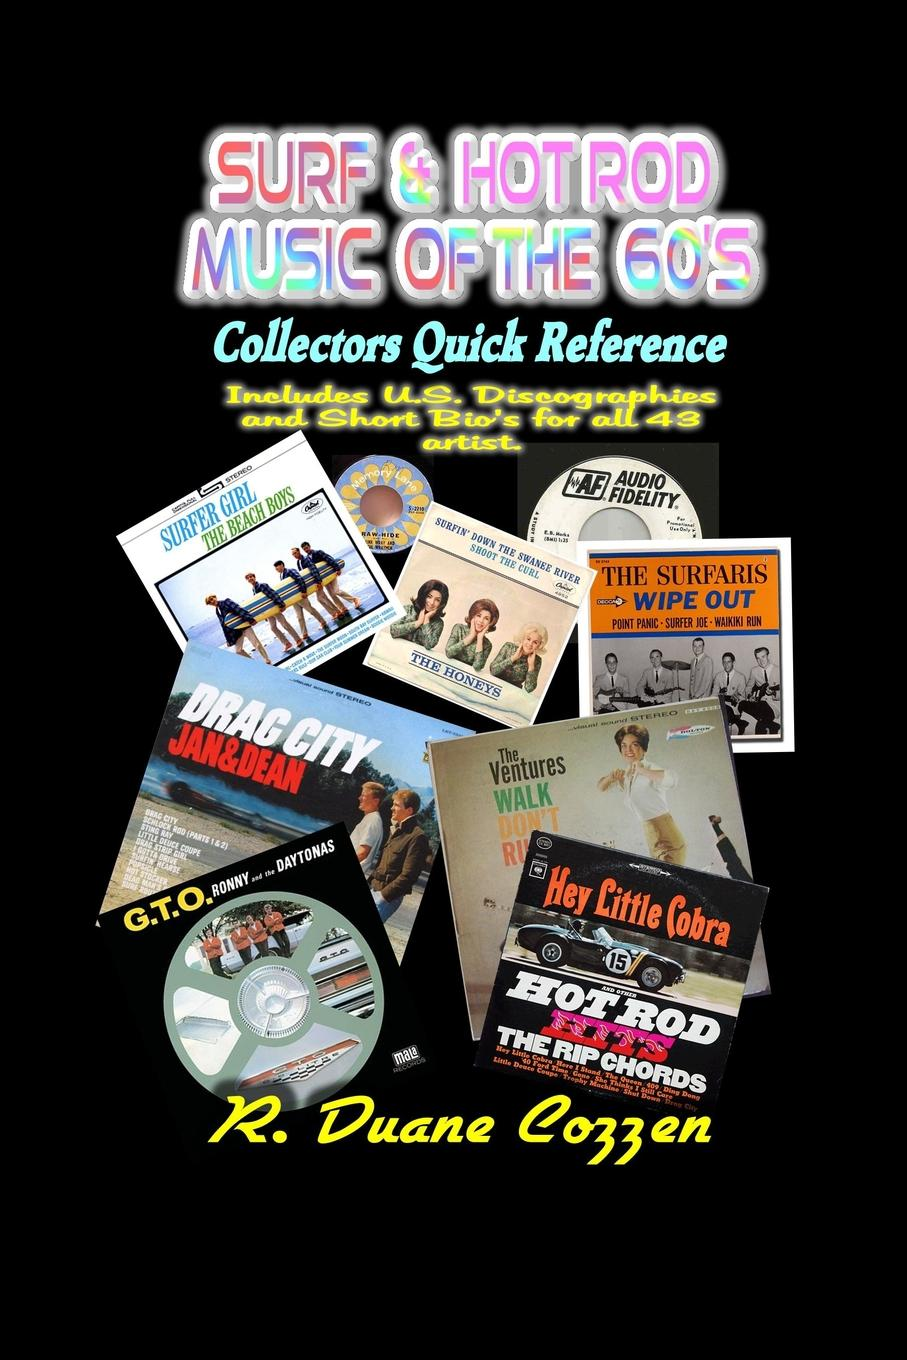 R. Duane Cozzen Surf . Hot Rod Music of the 60.s. Collectors Quick Reference коллектив авторов wyeth s repository of sacred music